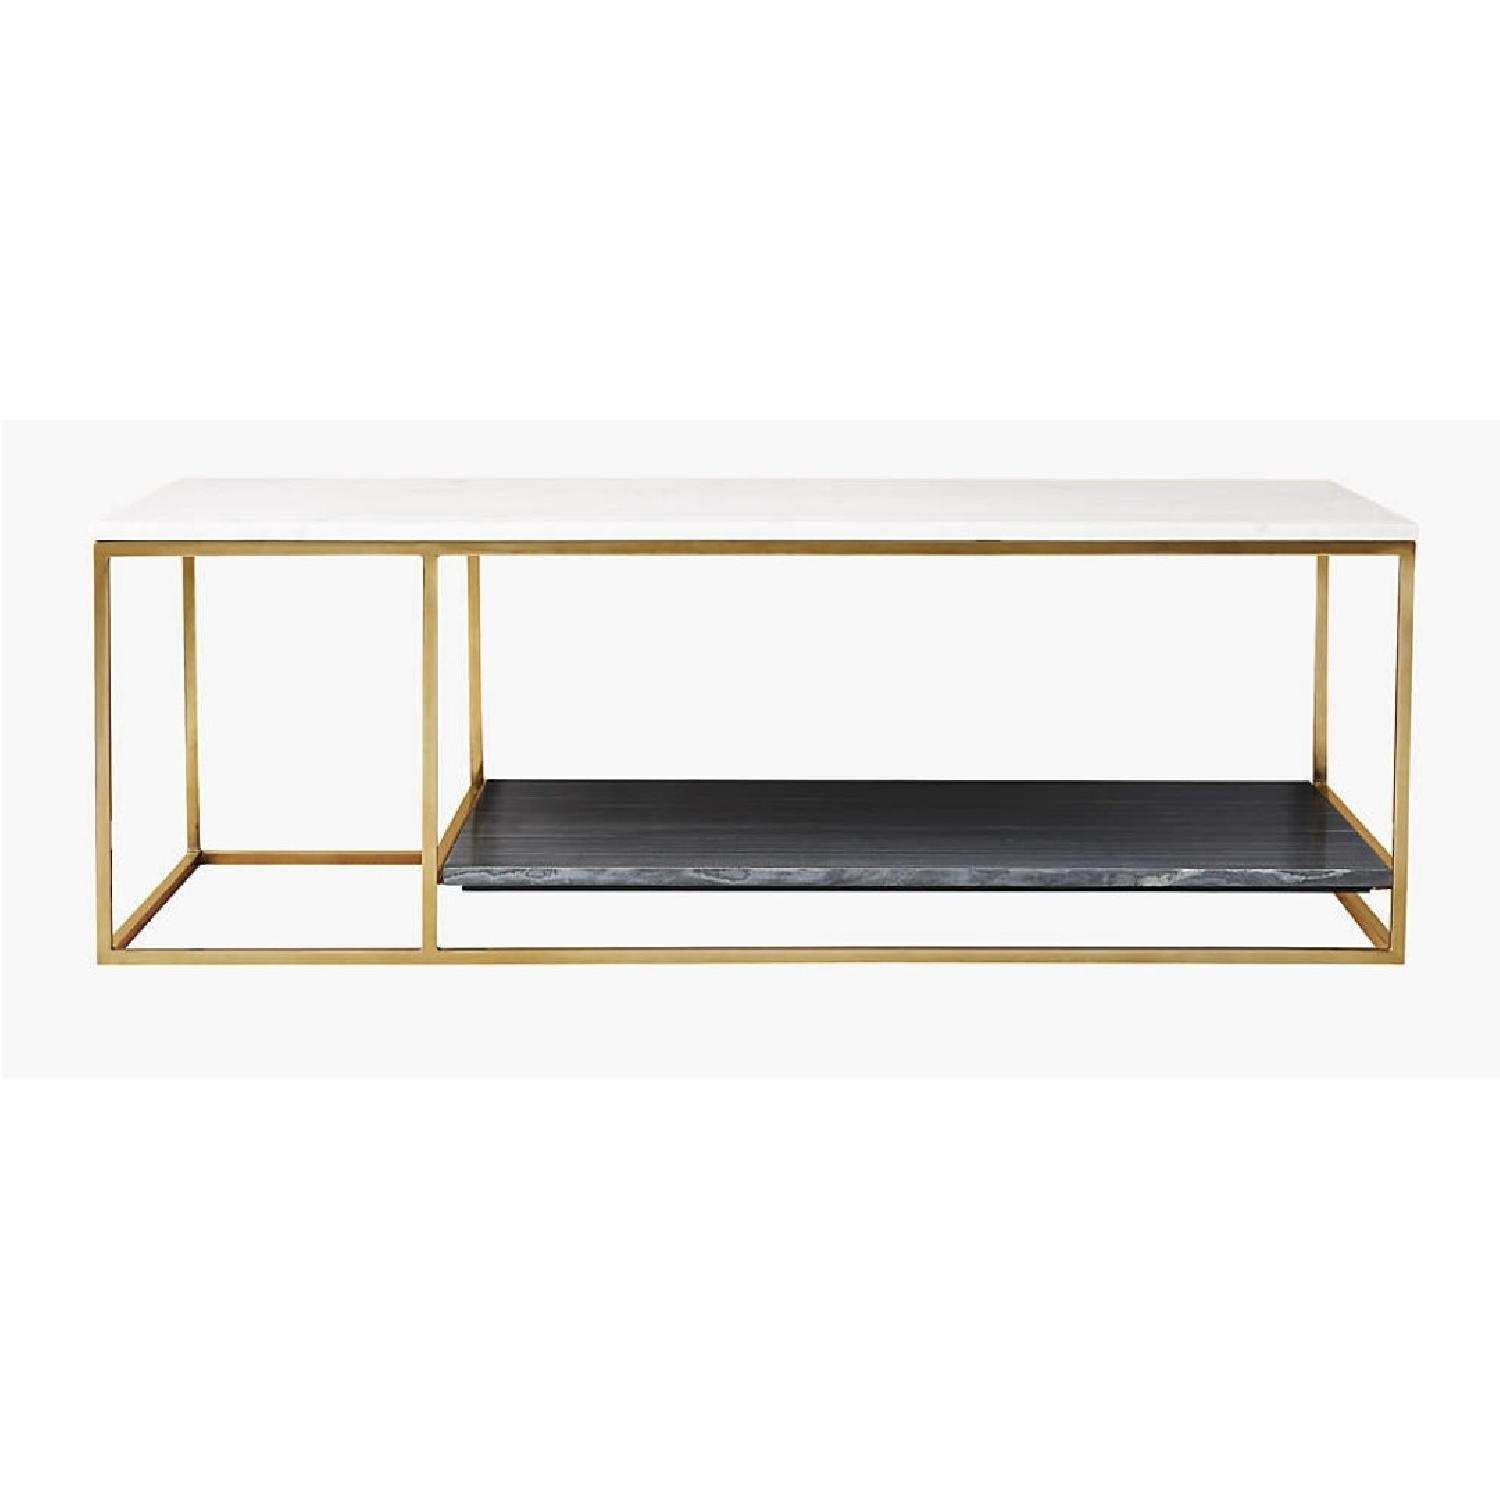 CB2 Grey and White Marble Coffee Table - image-5